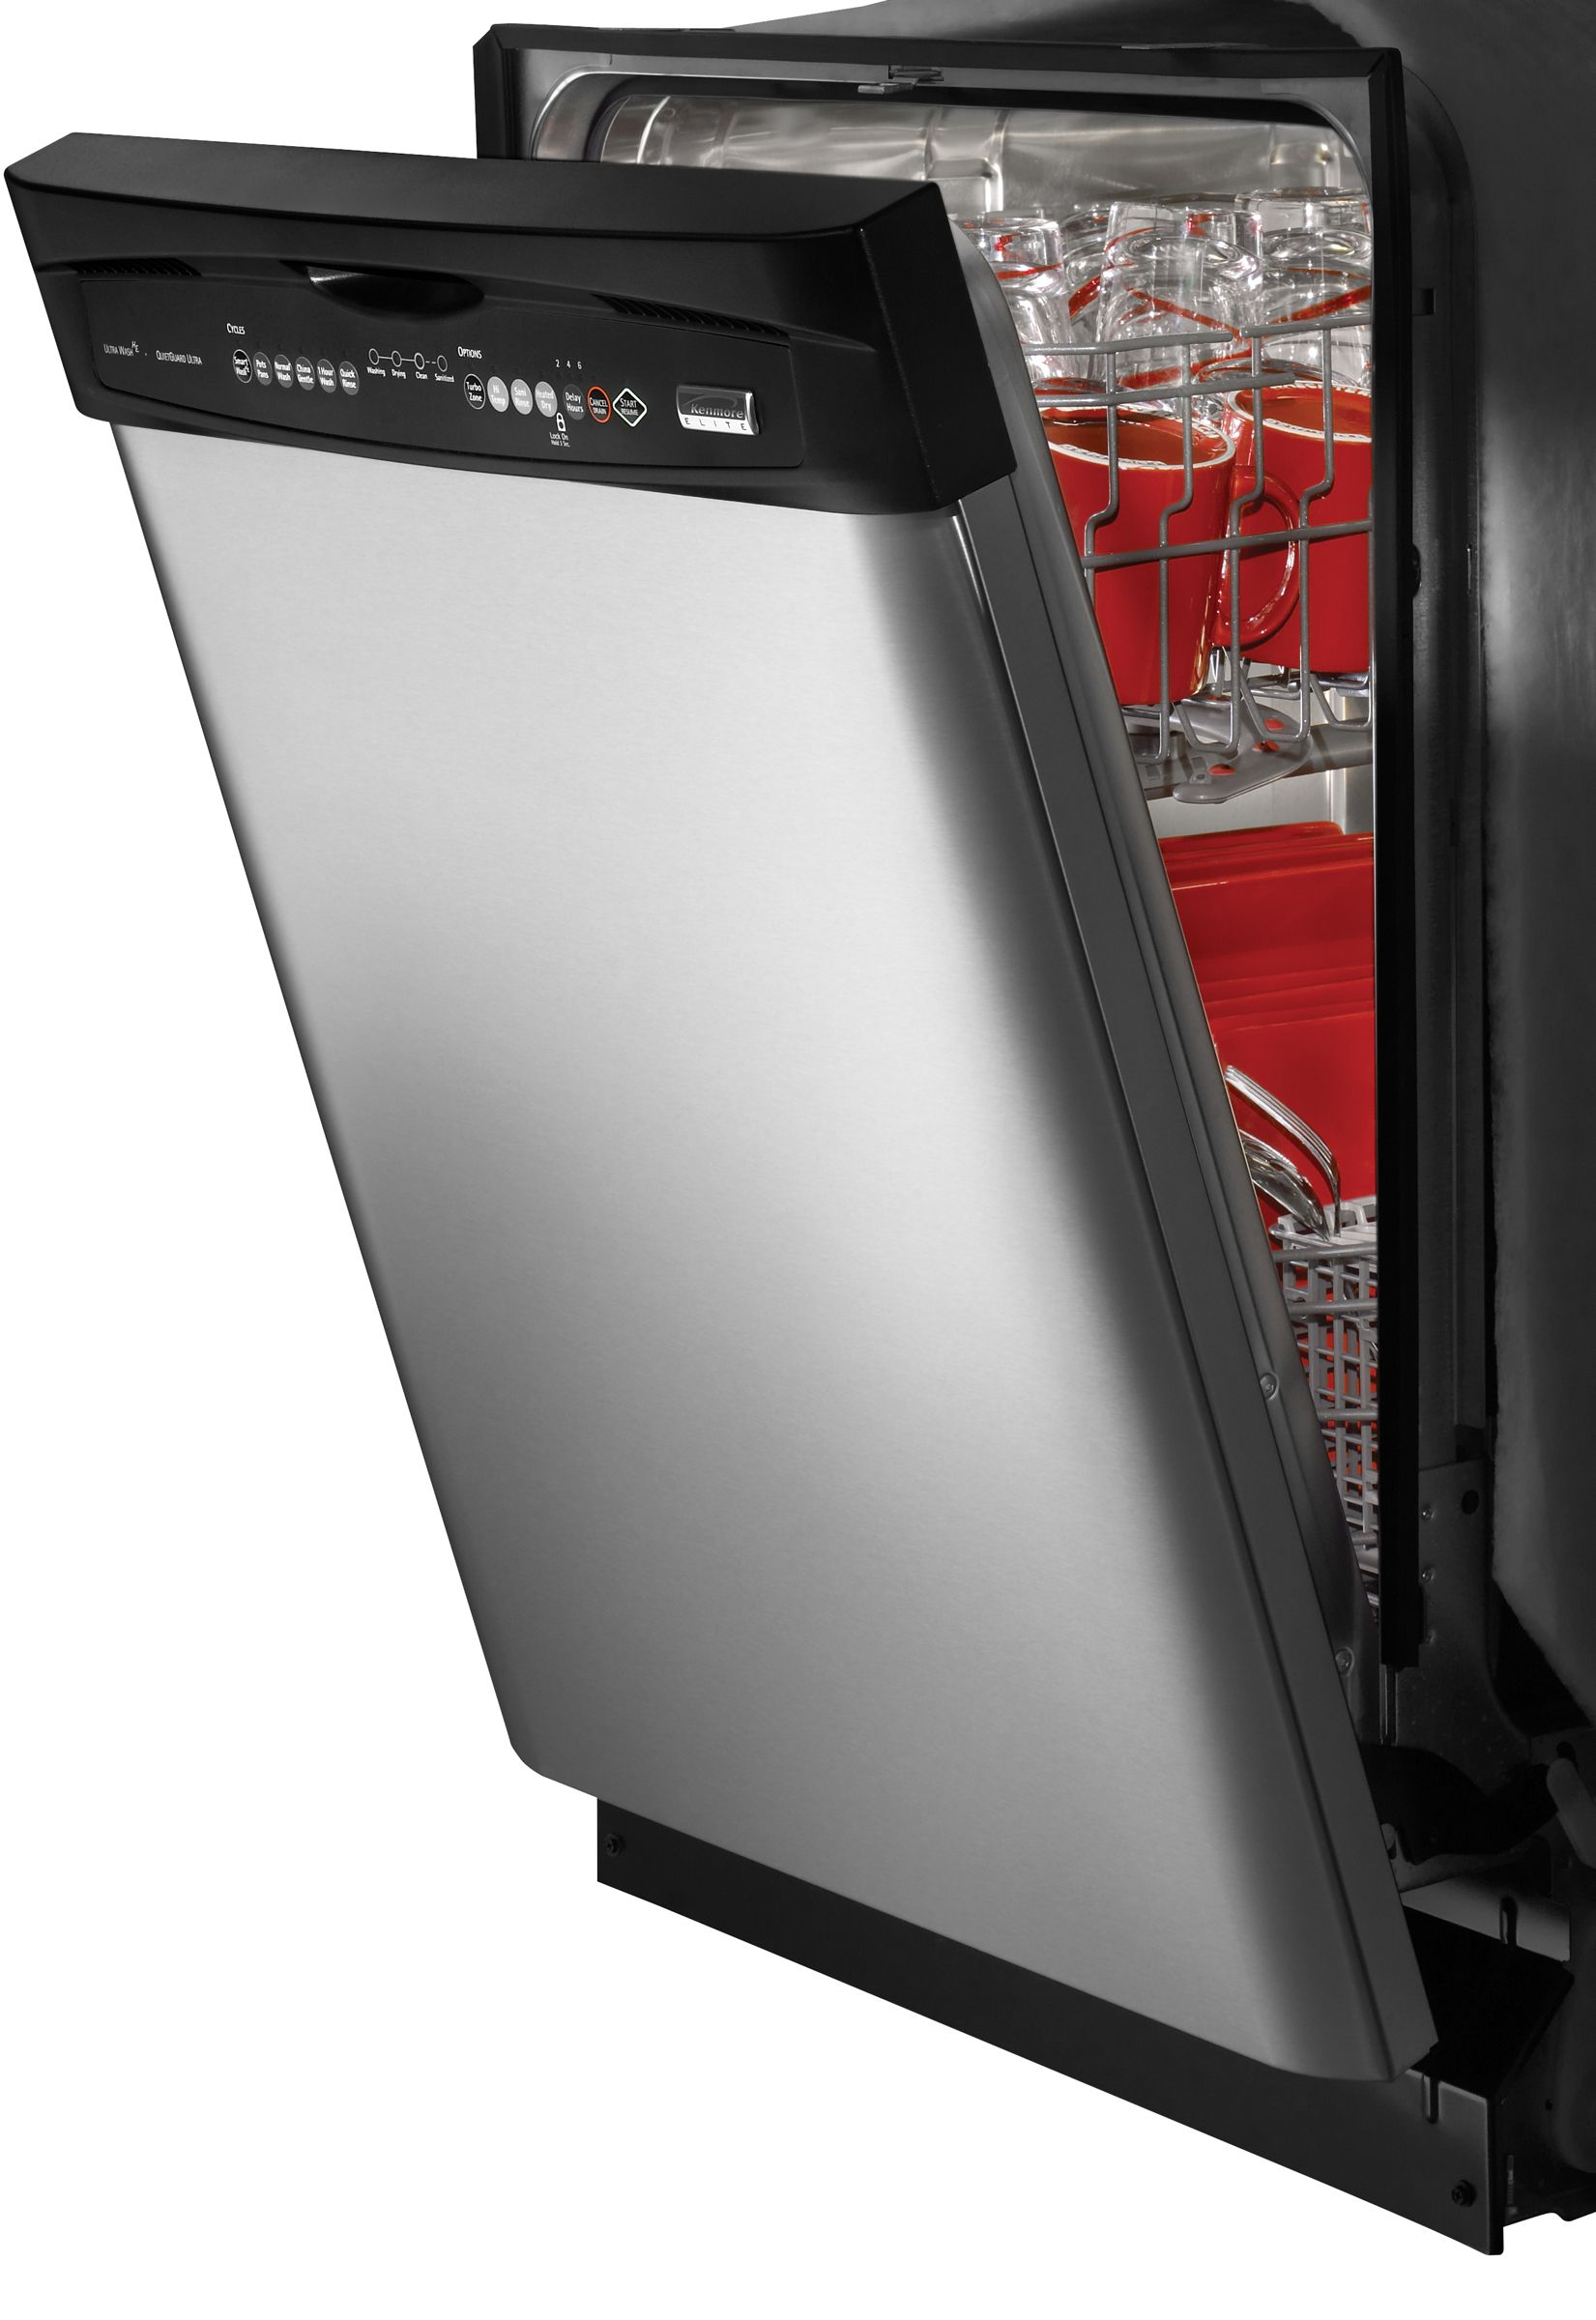 Kenmore Elite Elite® 24 in. Built-In Dishwasher with Ultra Wash HE Filtration (1312)